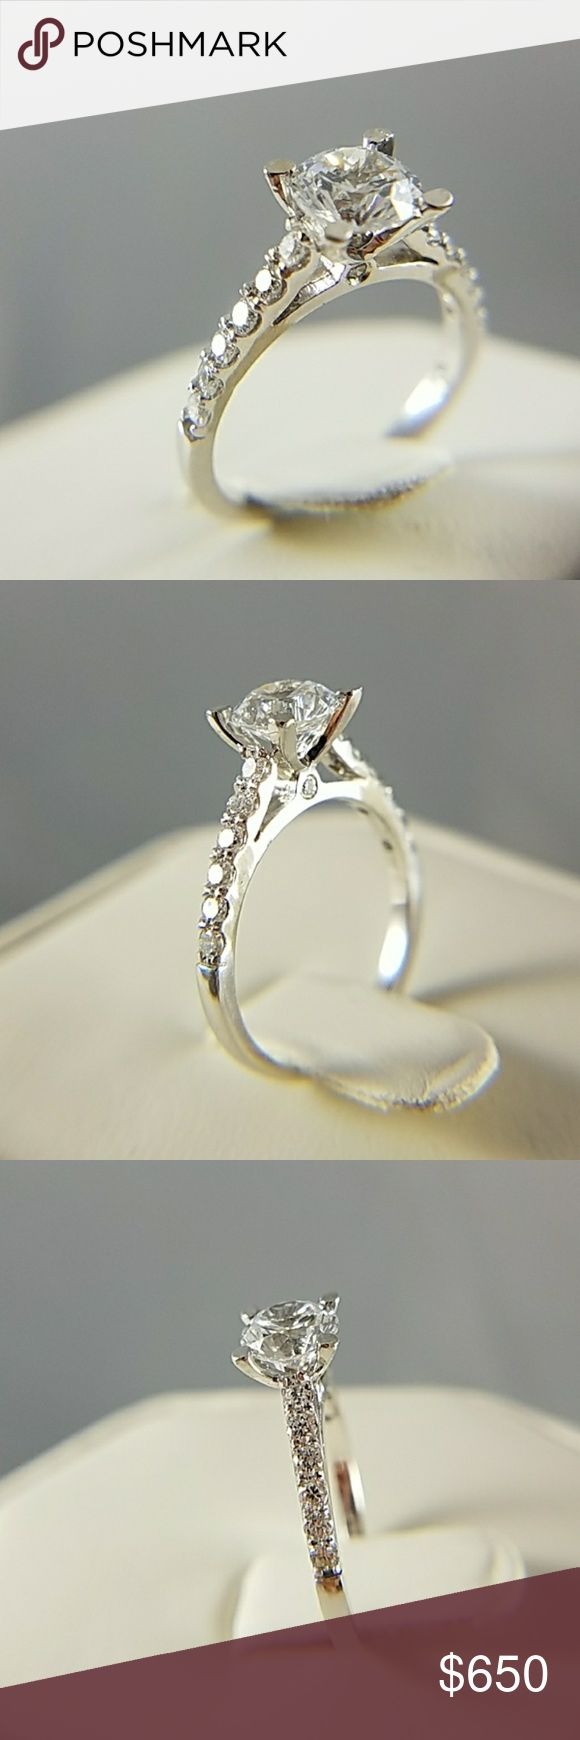 14K Solid White Gold Solitaire ENGAGEMENT ring New. Semi 4 prong Mounting Natural Real VVS1 D COLOR Diamond Engagement Ring with with center stone to put a 0.75 or 1ct either round cut or square cut or cushion cut Diamond. The side stones are 0.34ct 12 PCS Real Natural Diamonds with VVS1 QUALITY AND D COLOR. CENTER STONE IS CUBIC ZIRCONIA Jewelry Rings